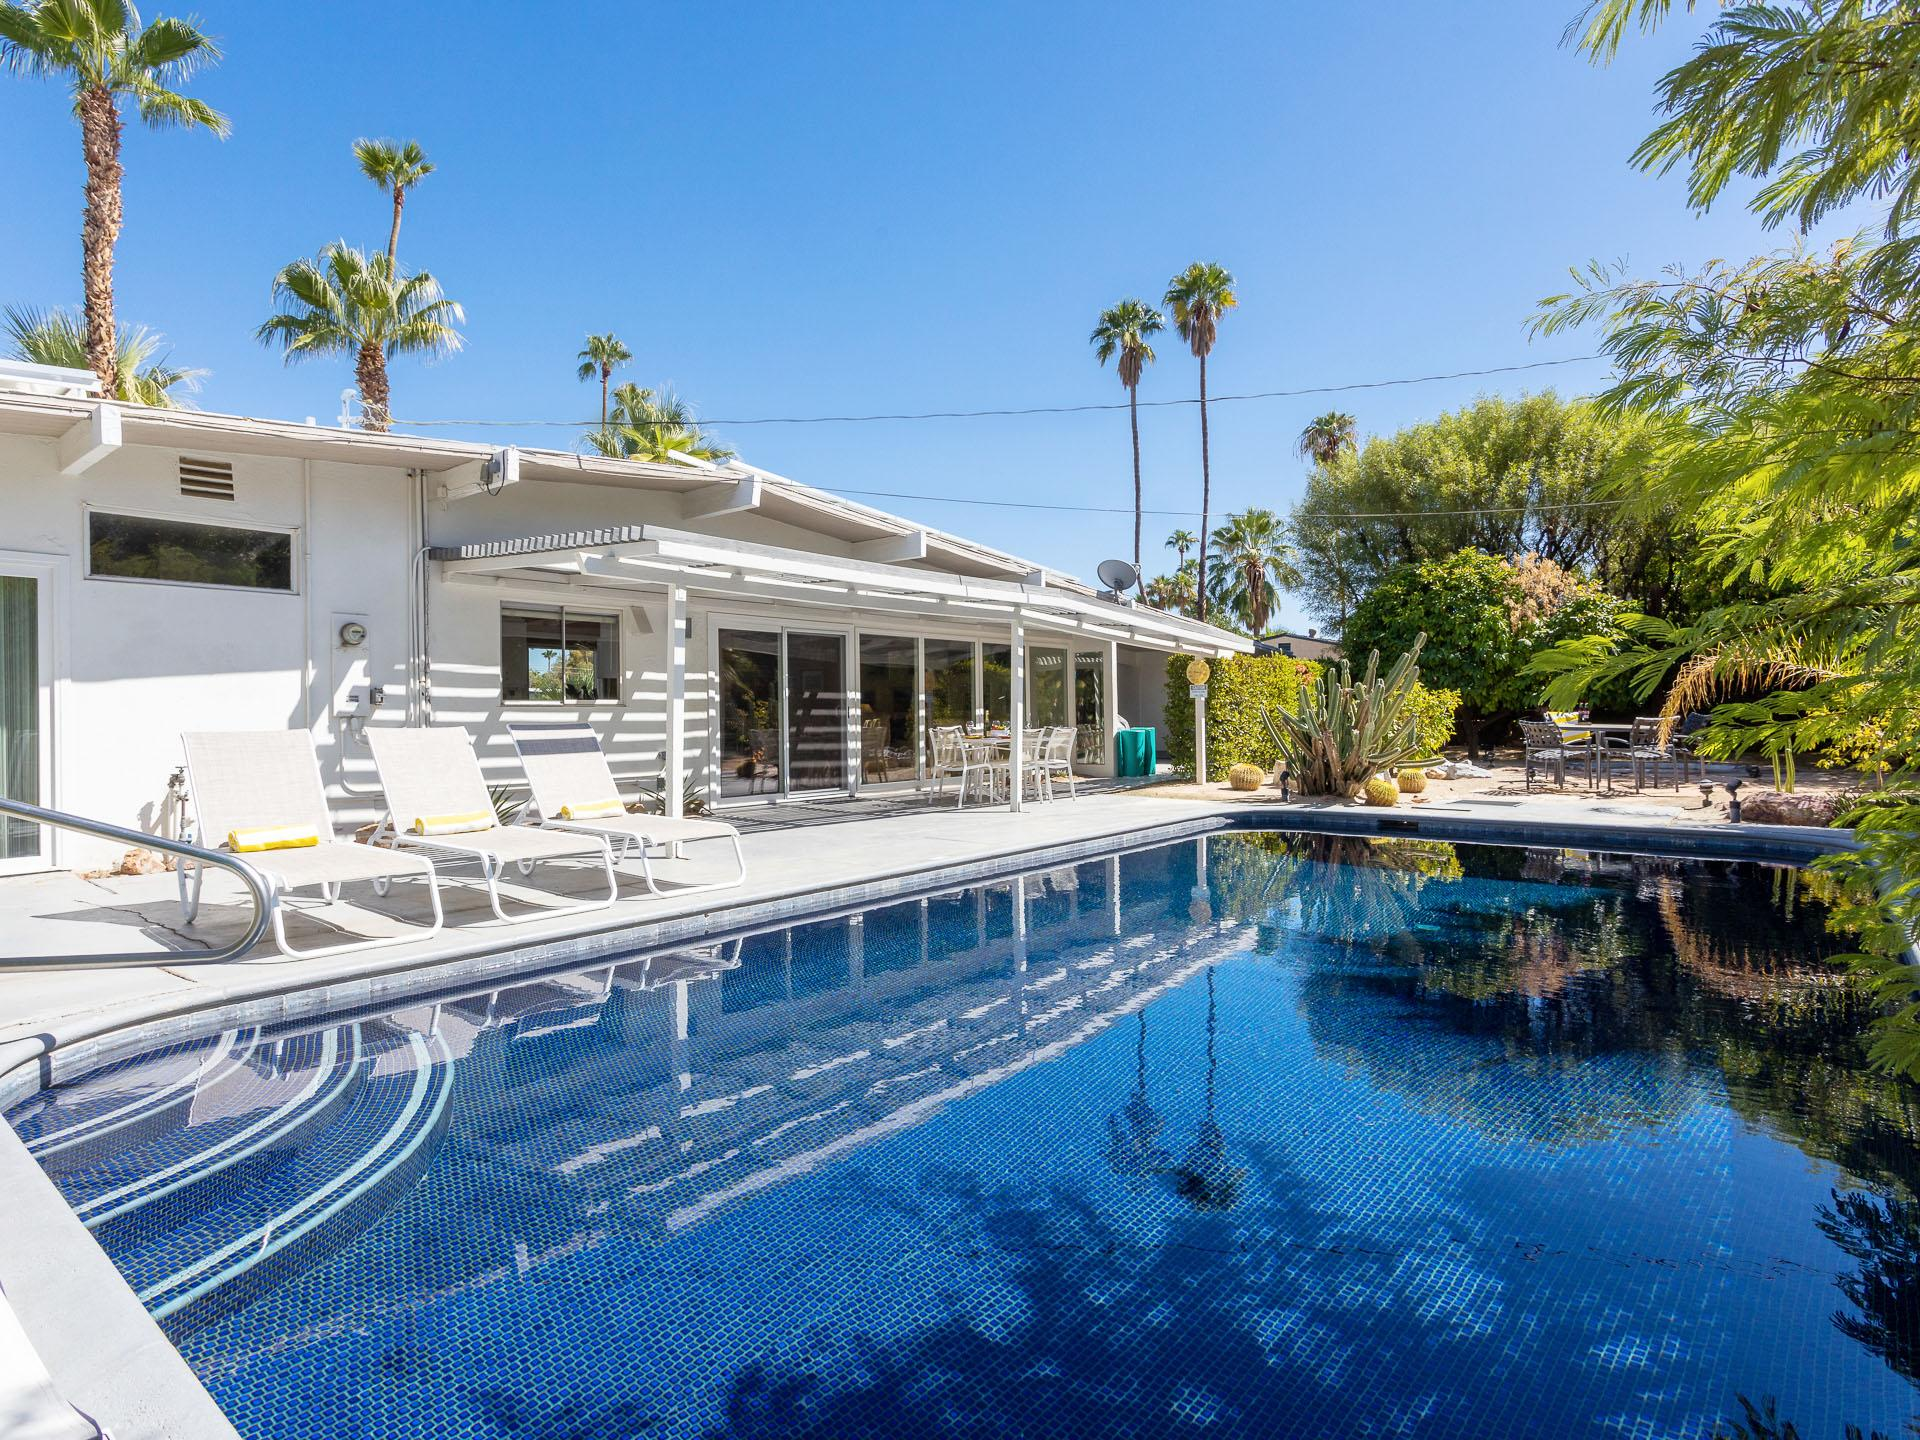 Property Image 1 - Vacation Escape Home with Mosaic Pool in Palm Springs